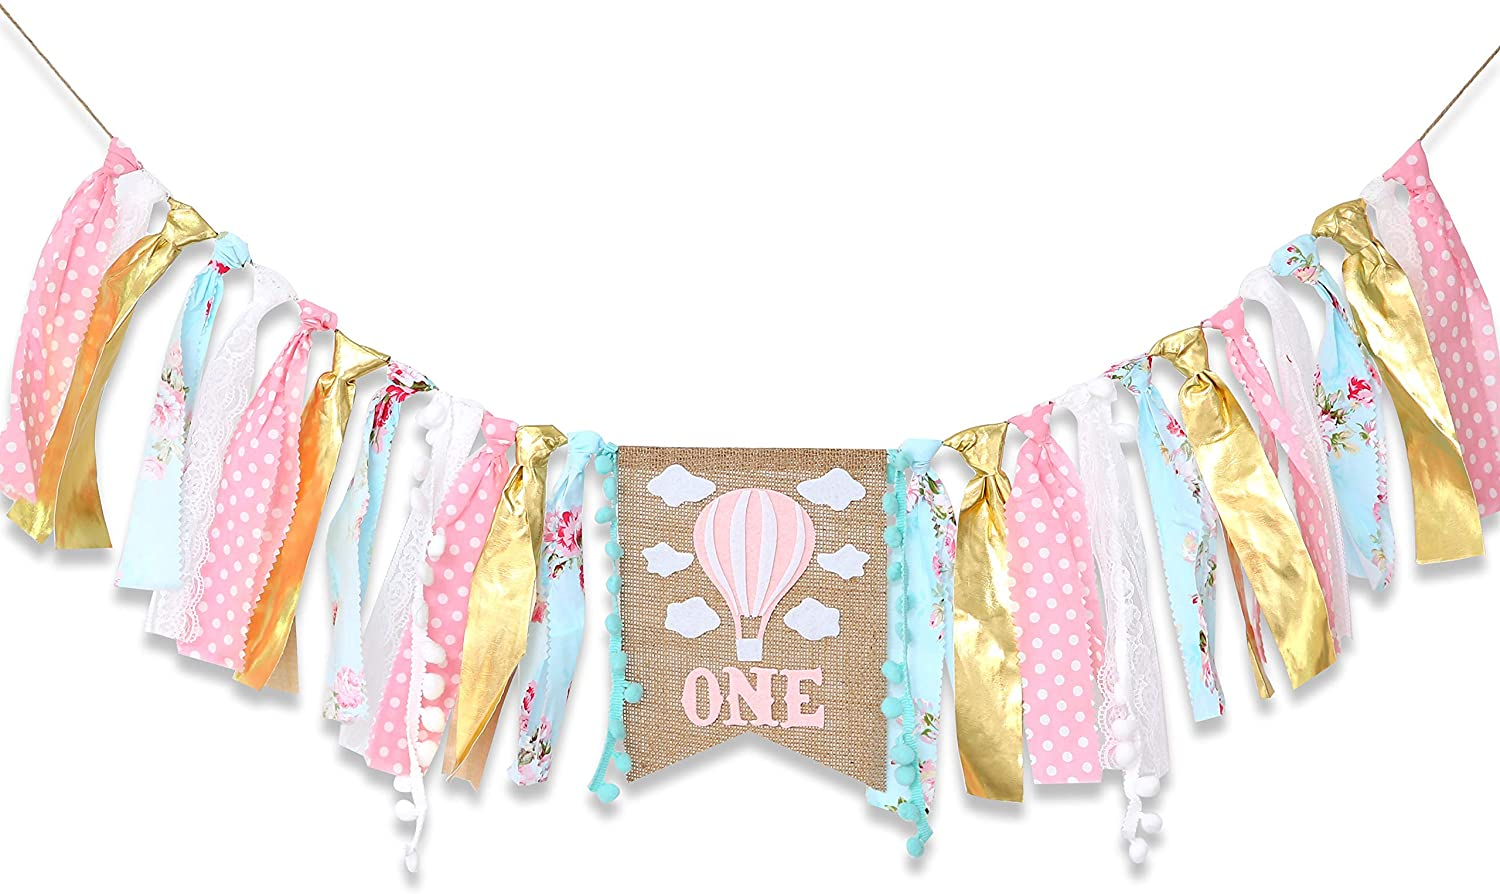 Hot Air Balloon Banner for 1st Birthday - Cake Smash Photo Prop for High Chair,Party Decoration for First Baby Birthday,Birthday Souvenir for Baby Girl(Pink Golden)